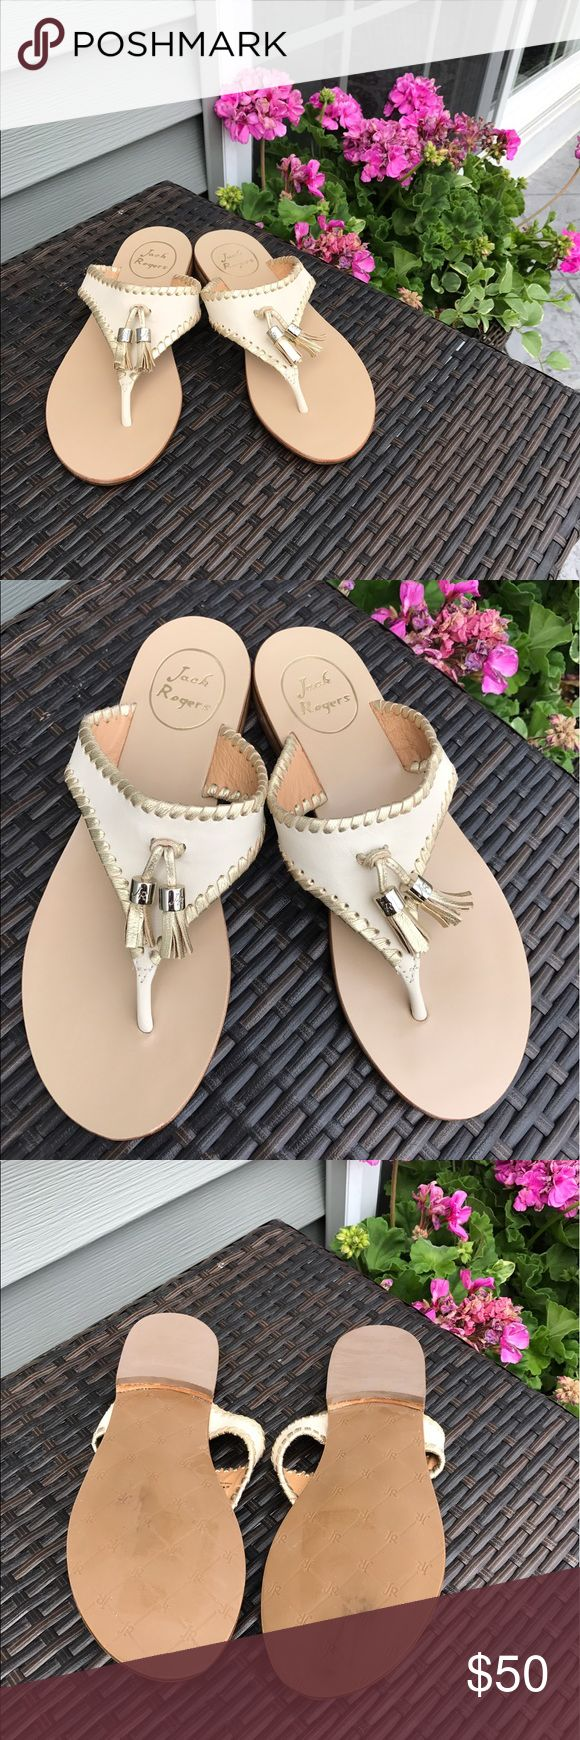 Jack Rodgers 'Alana' Thong Sandal Jack Rodgers 'Alana' Thong Sandal in bone and gold with tassel. Size 6.5. Brand new never worn. Beautiful! Jack Rogers Shoes Sandals